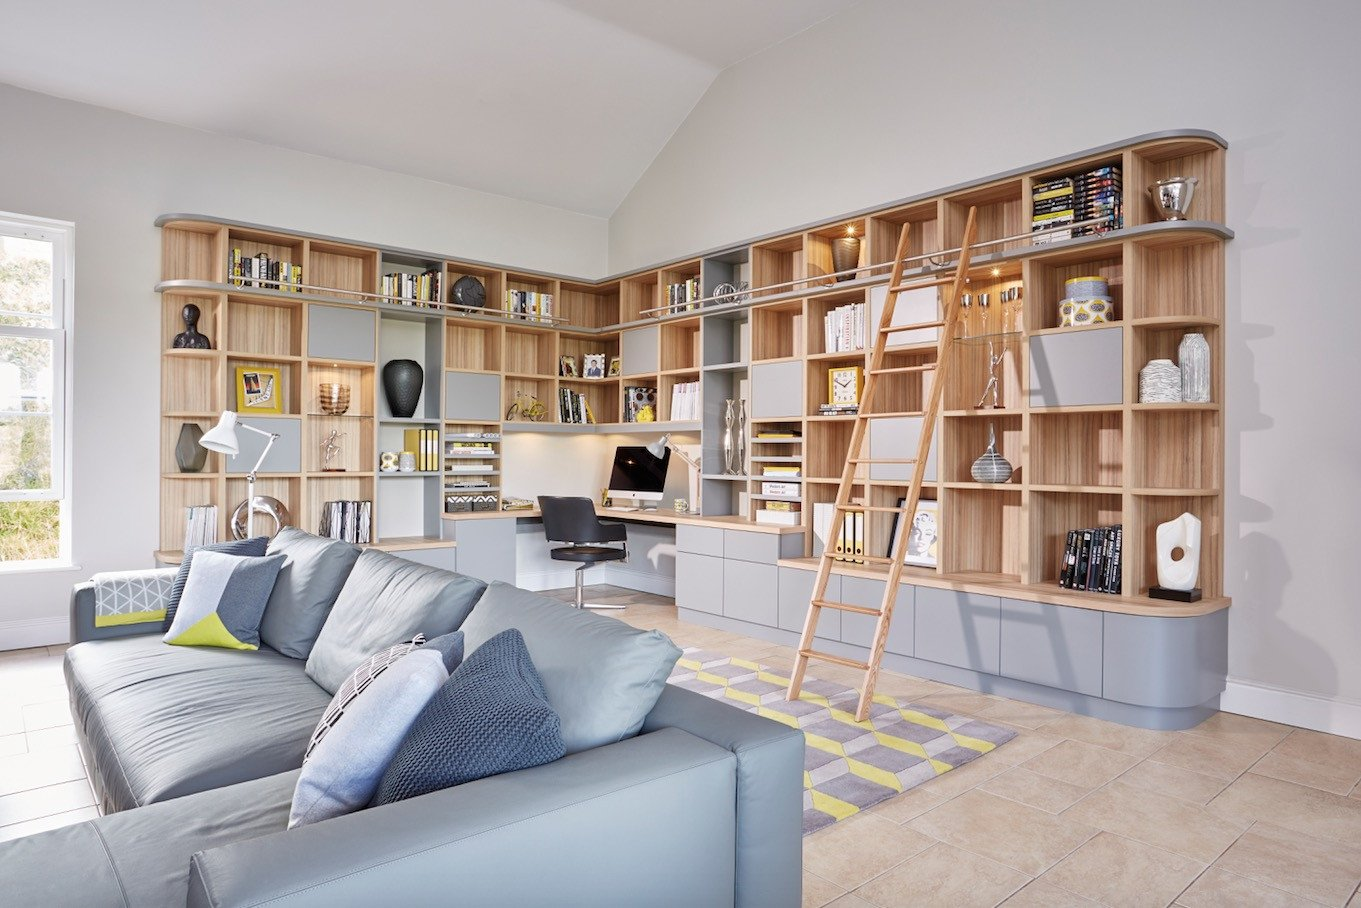 Small Living Room Storage Ideas 6 Space Saving solutions and Storage Ideas for Your Living